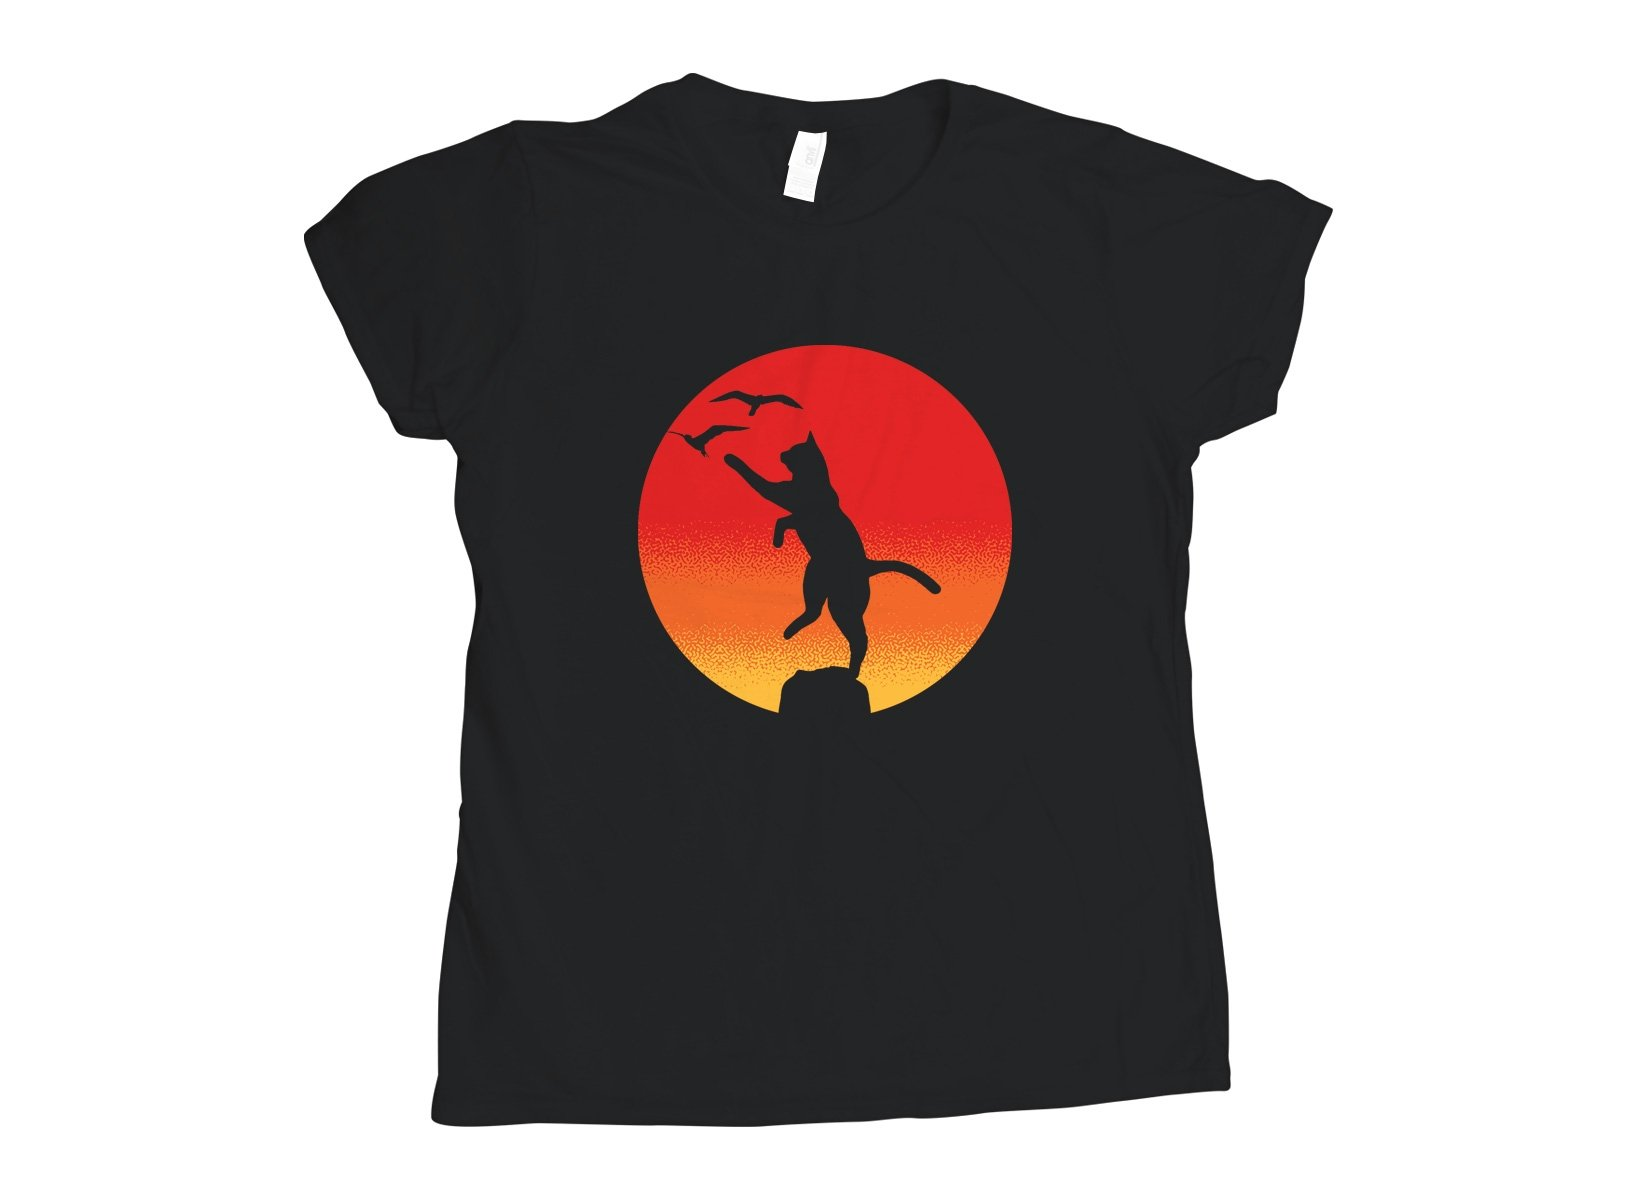 The Karate Cat on Womens T-Shirt